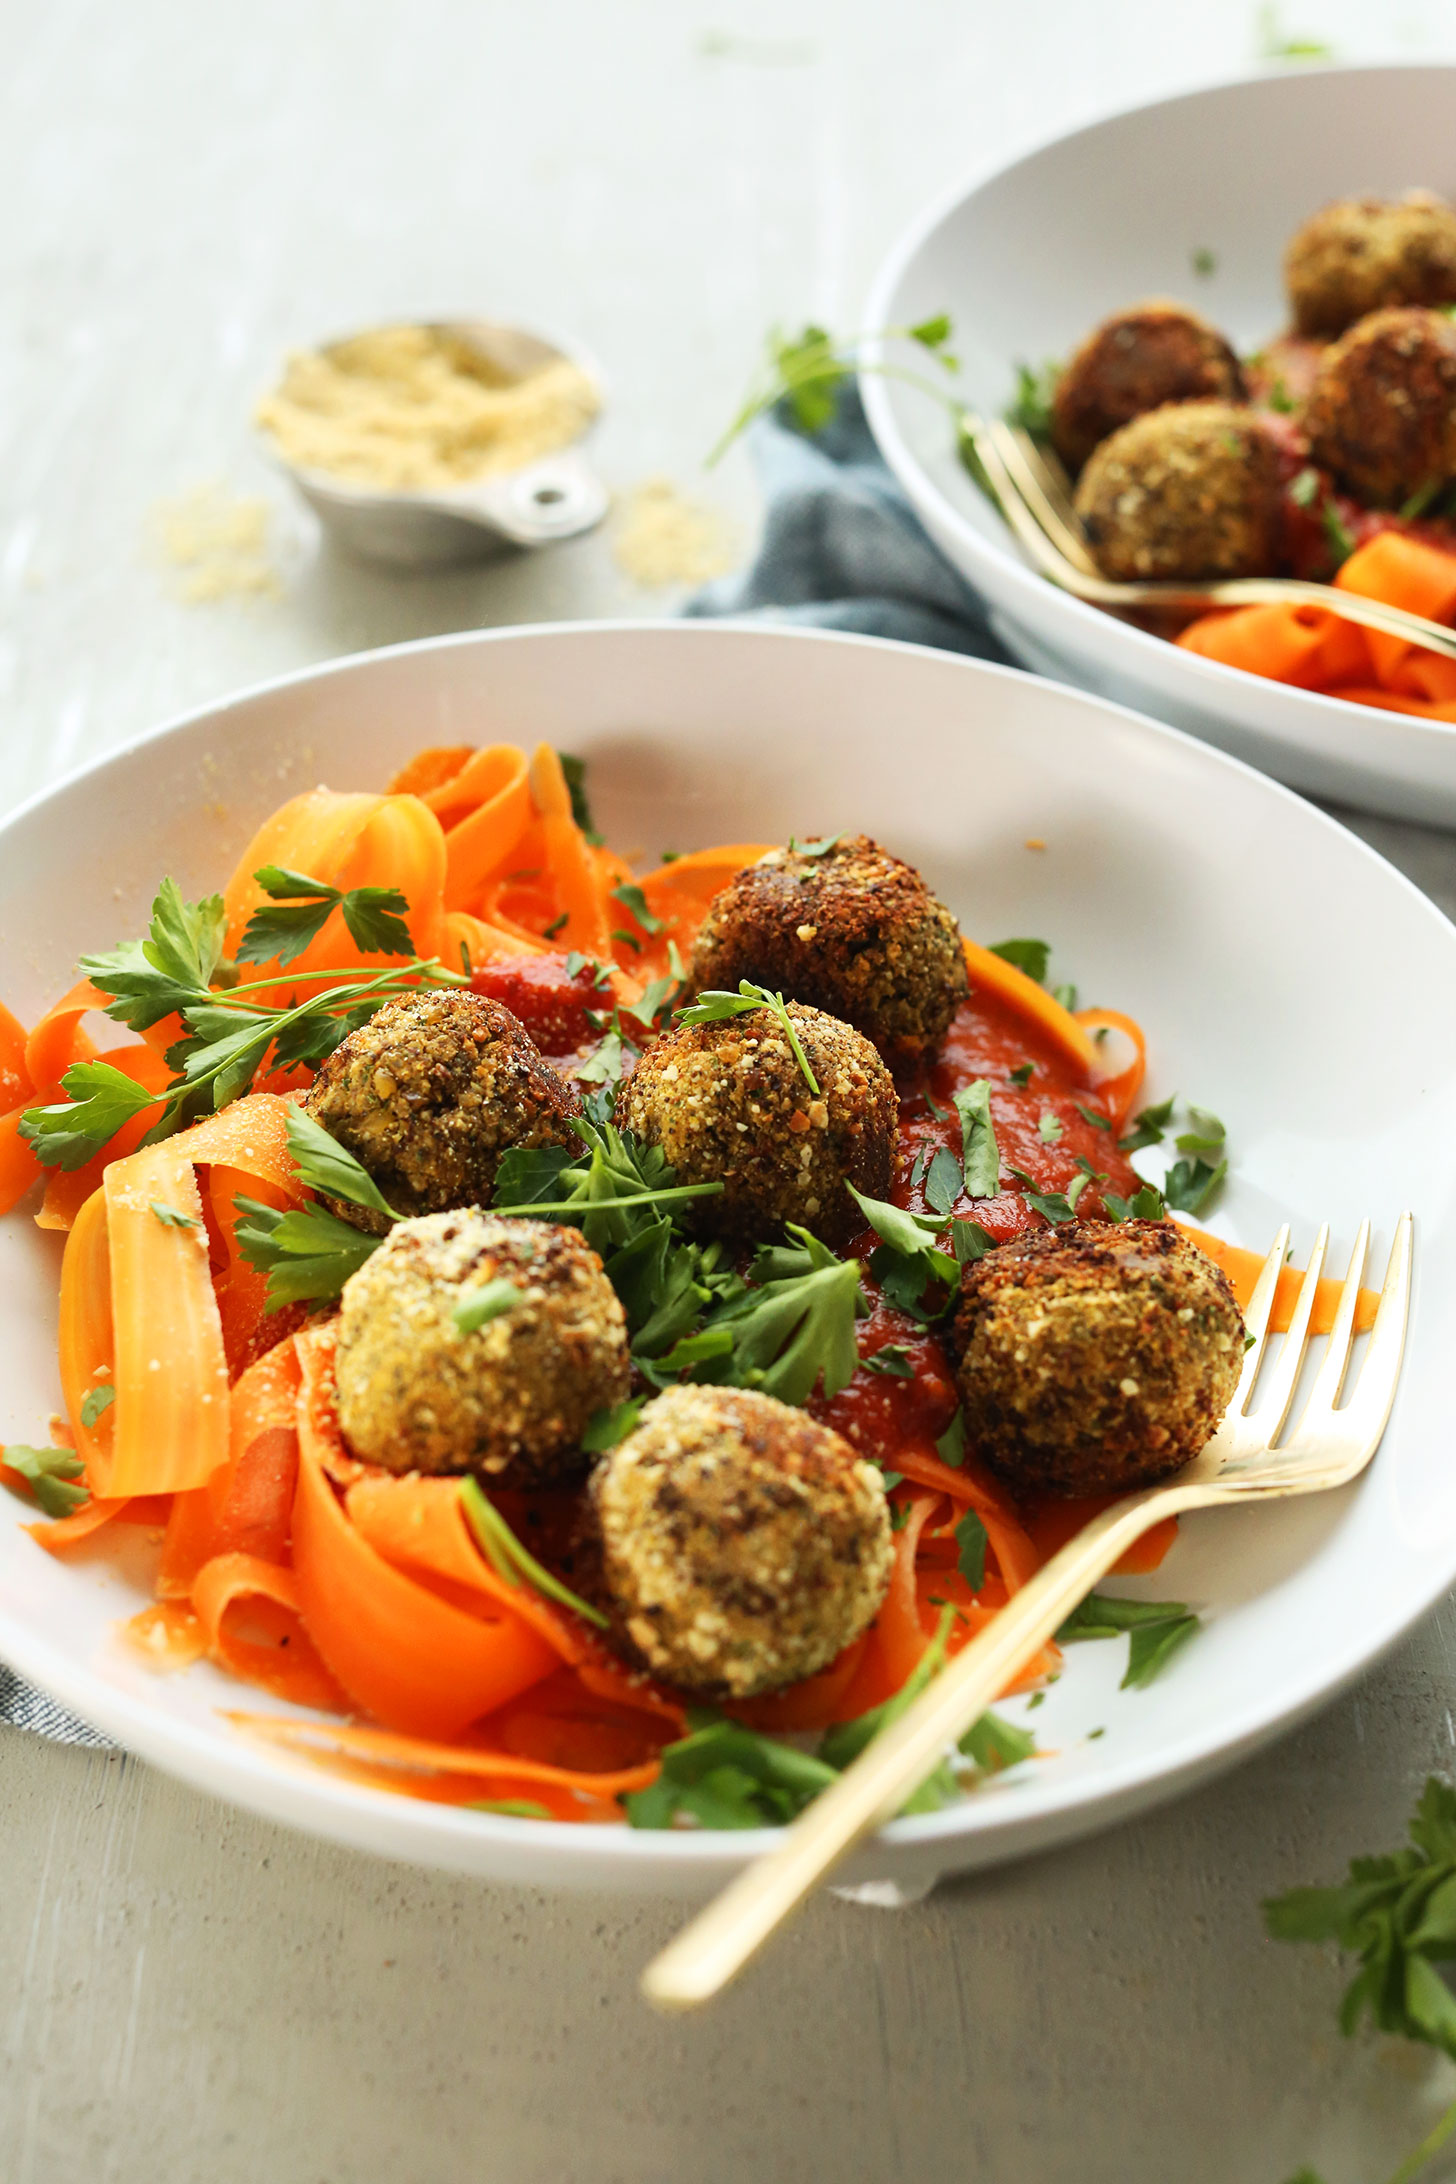 Our lentil meatball recipe served over carrot noodles with marinara for a healthy plant-based meal